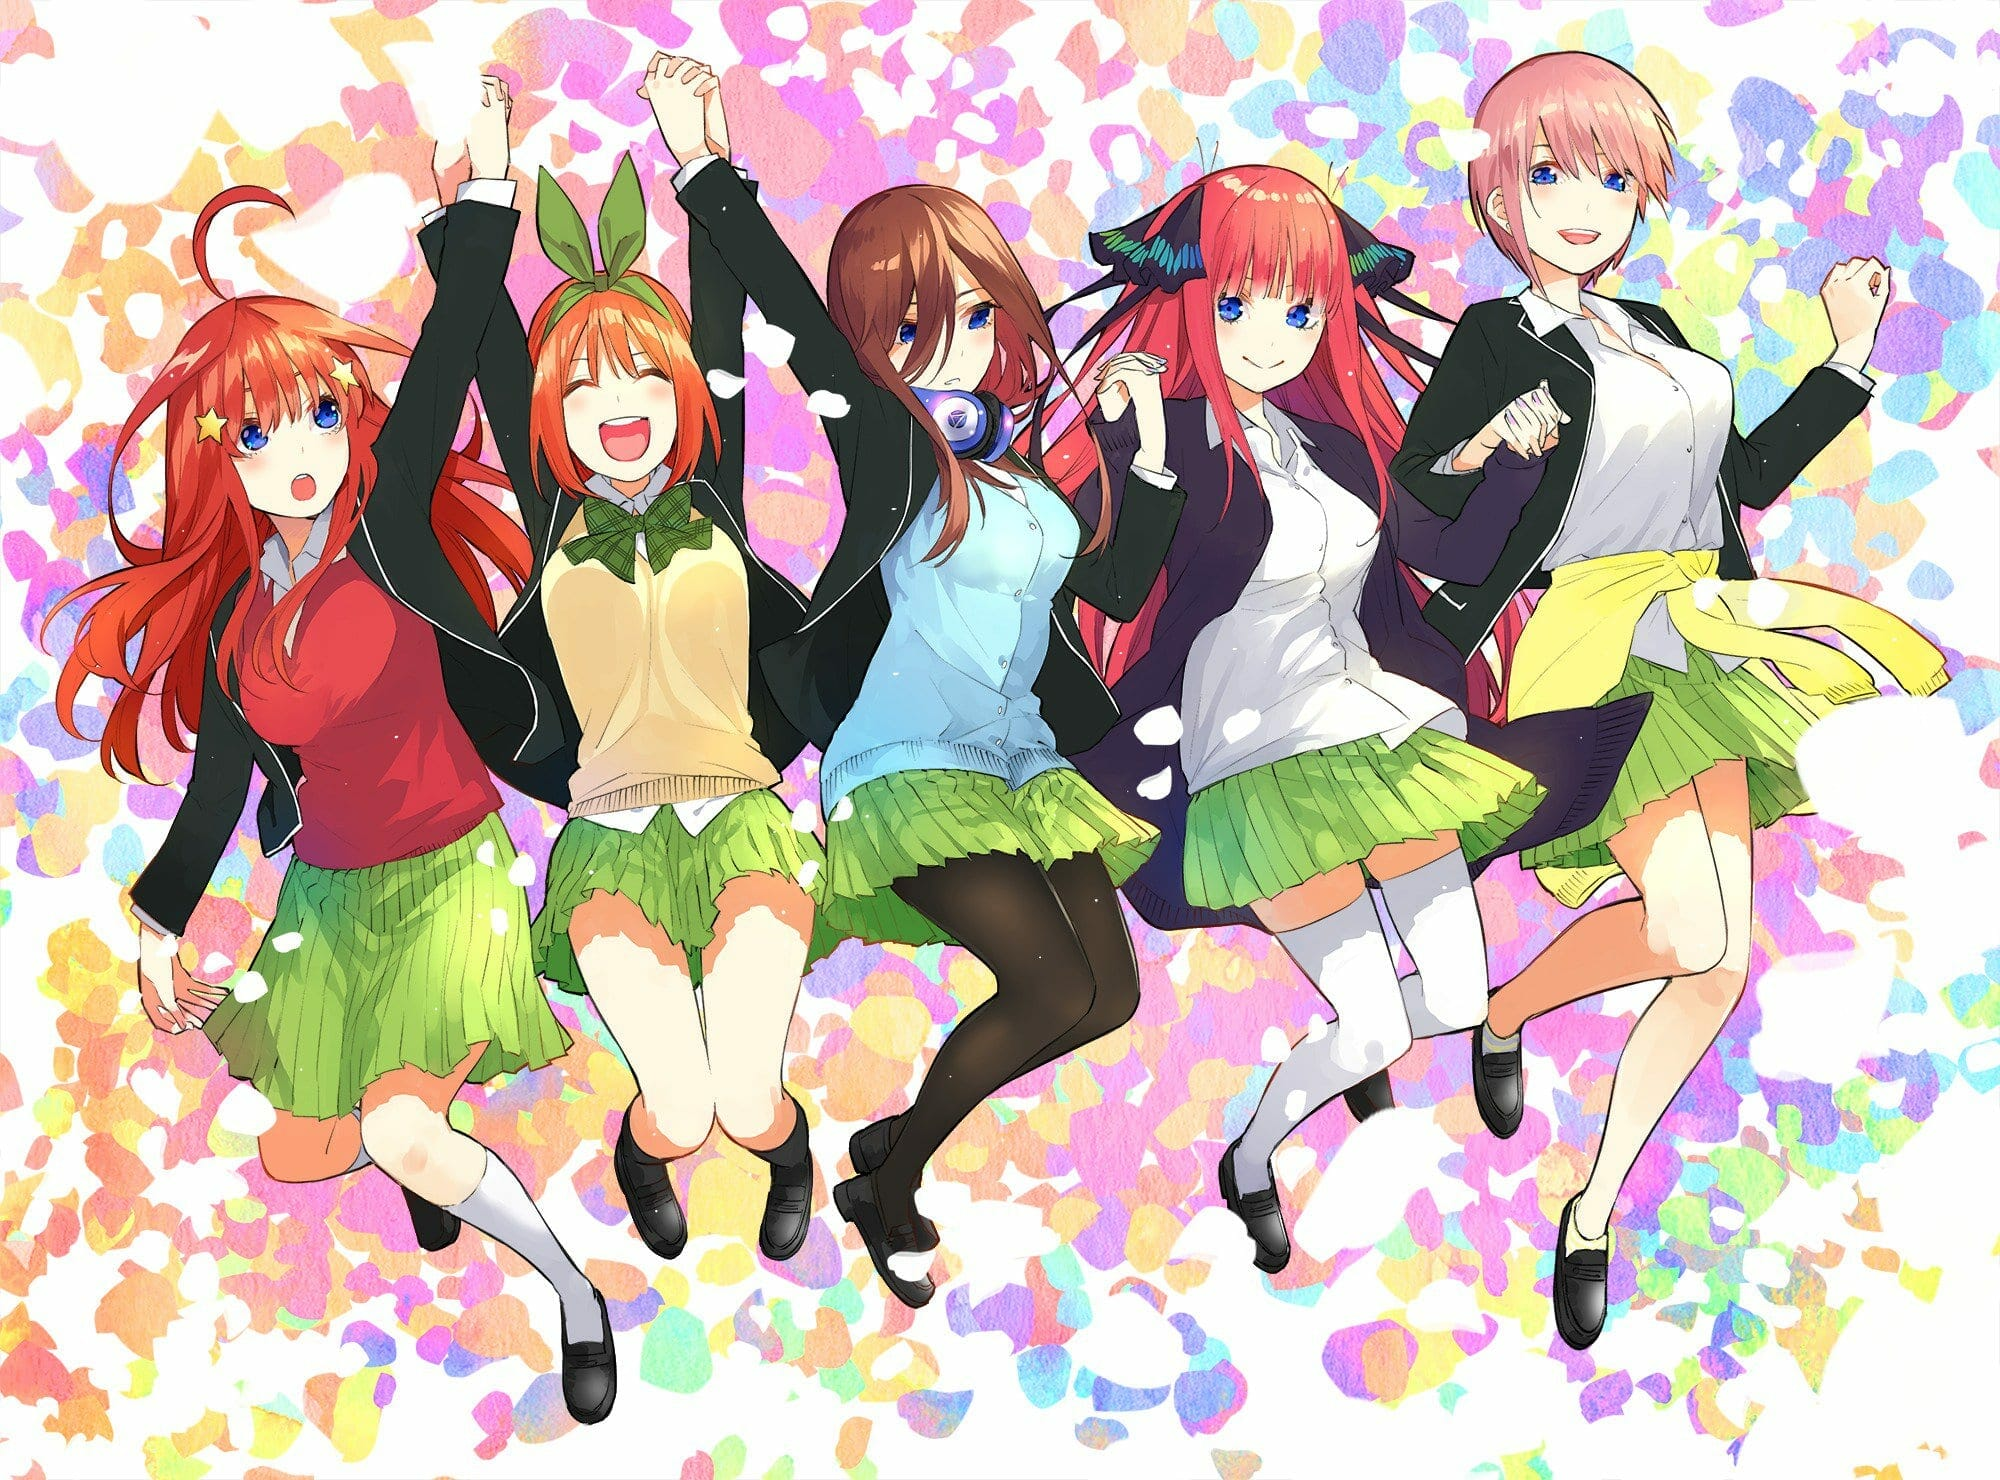 5 toubun no hanayome anime will be released in january 2019